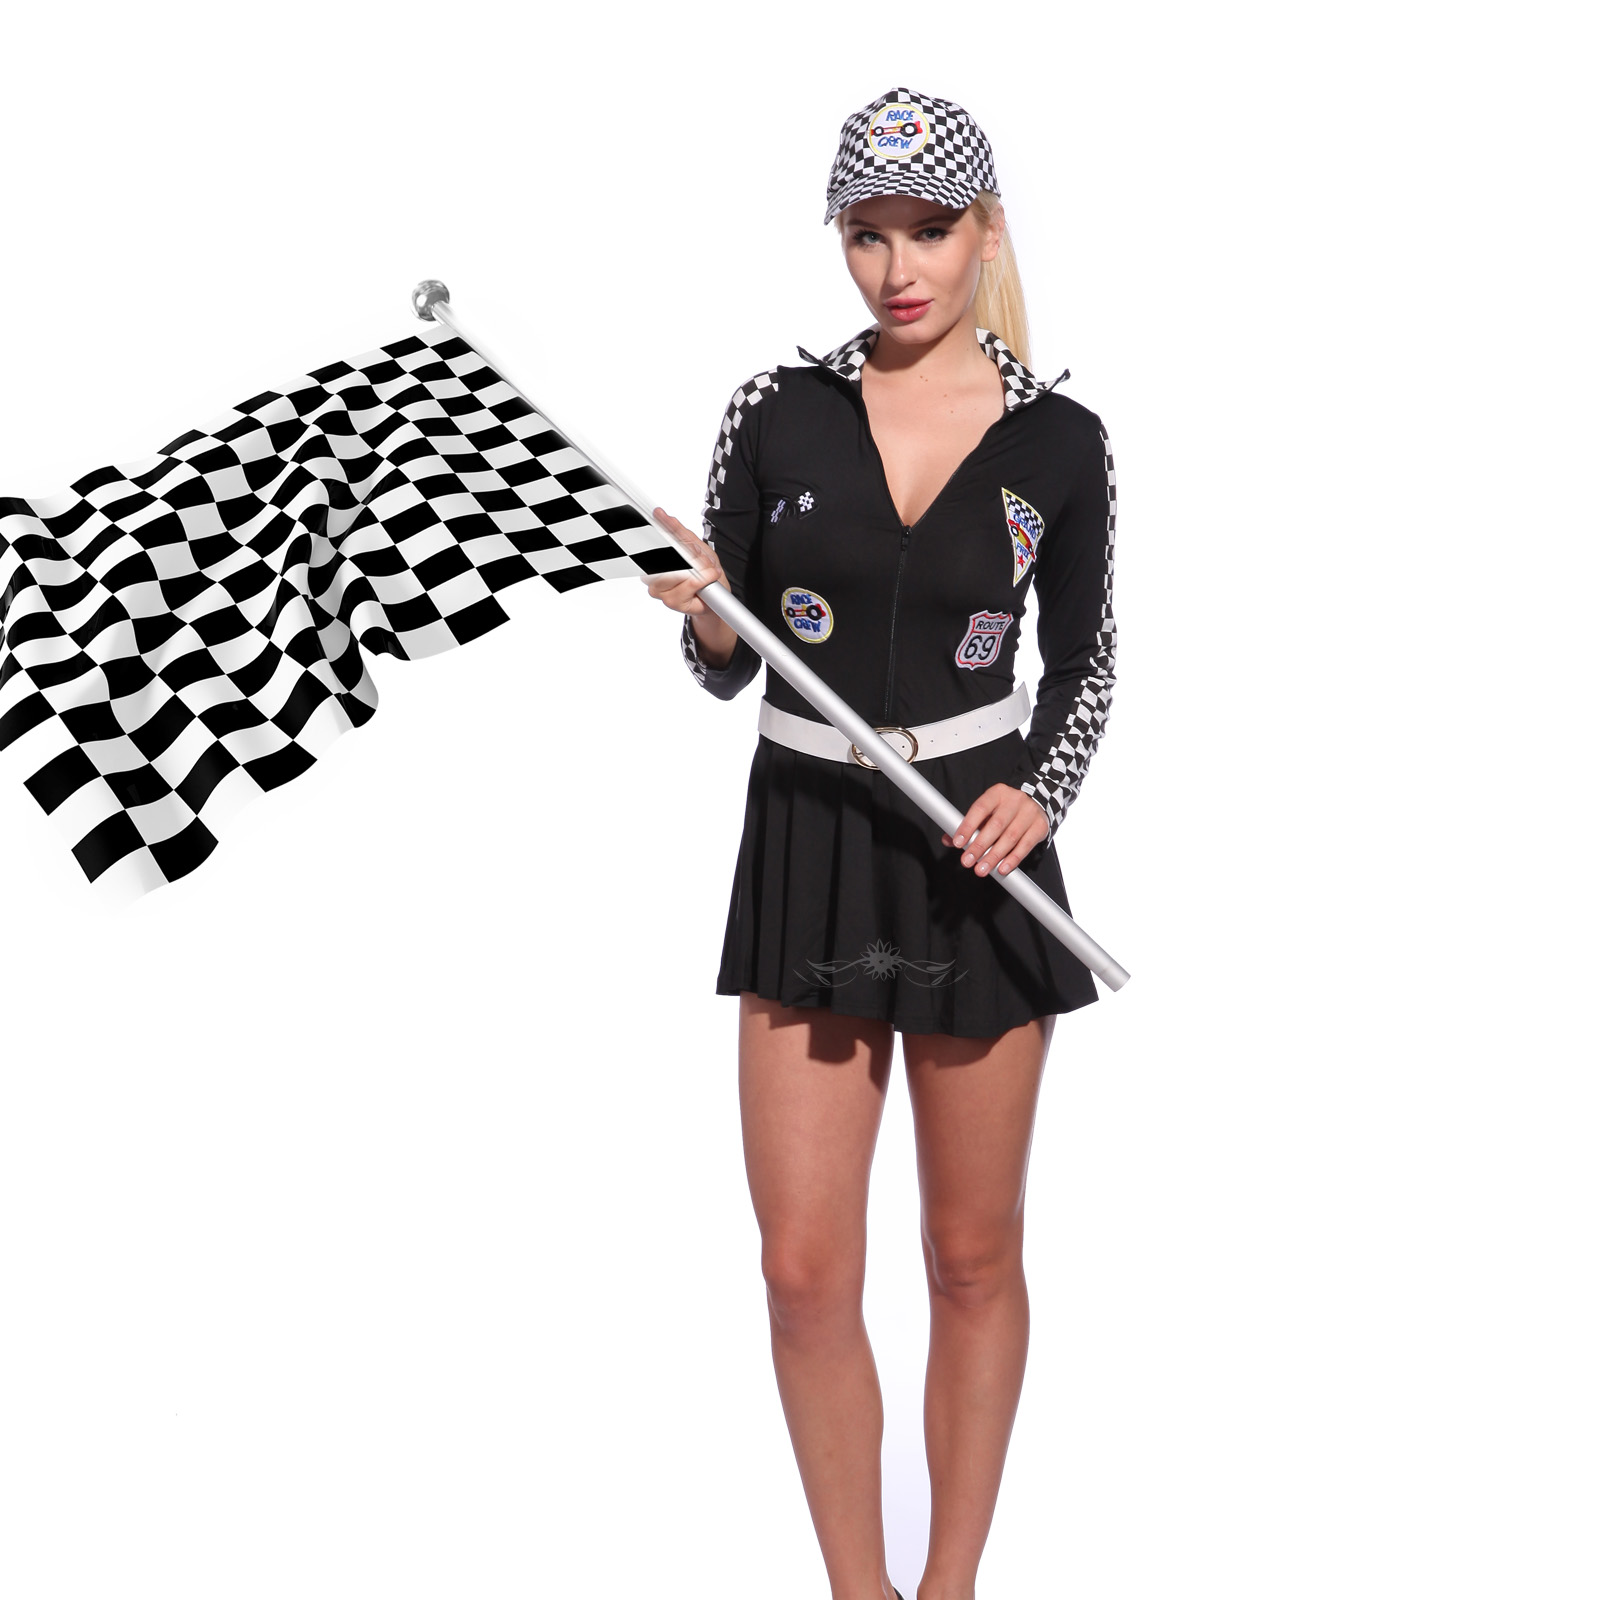 Sexy Women Grid F1 Grand Prix Super Car Racer Racing Driver Fancy Dress Outfit | eBay